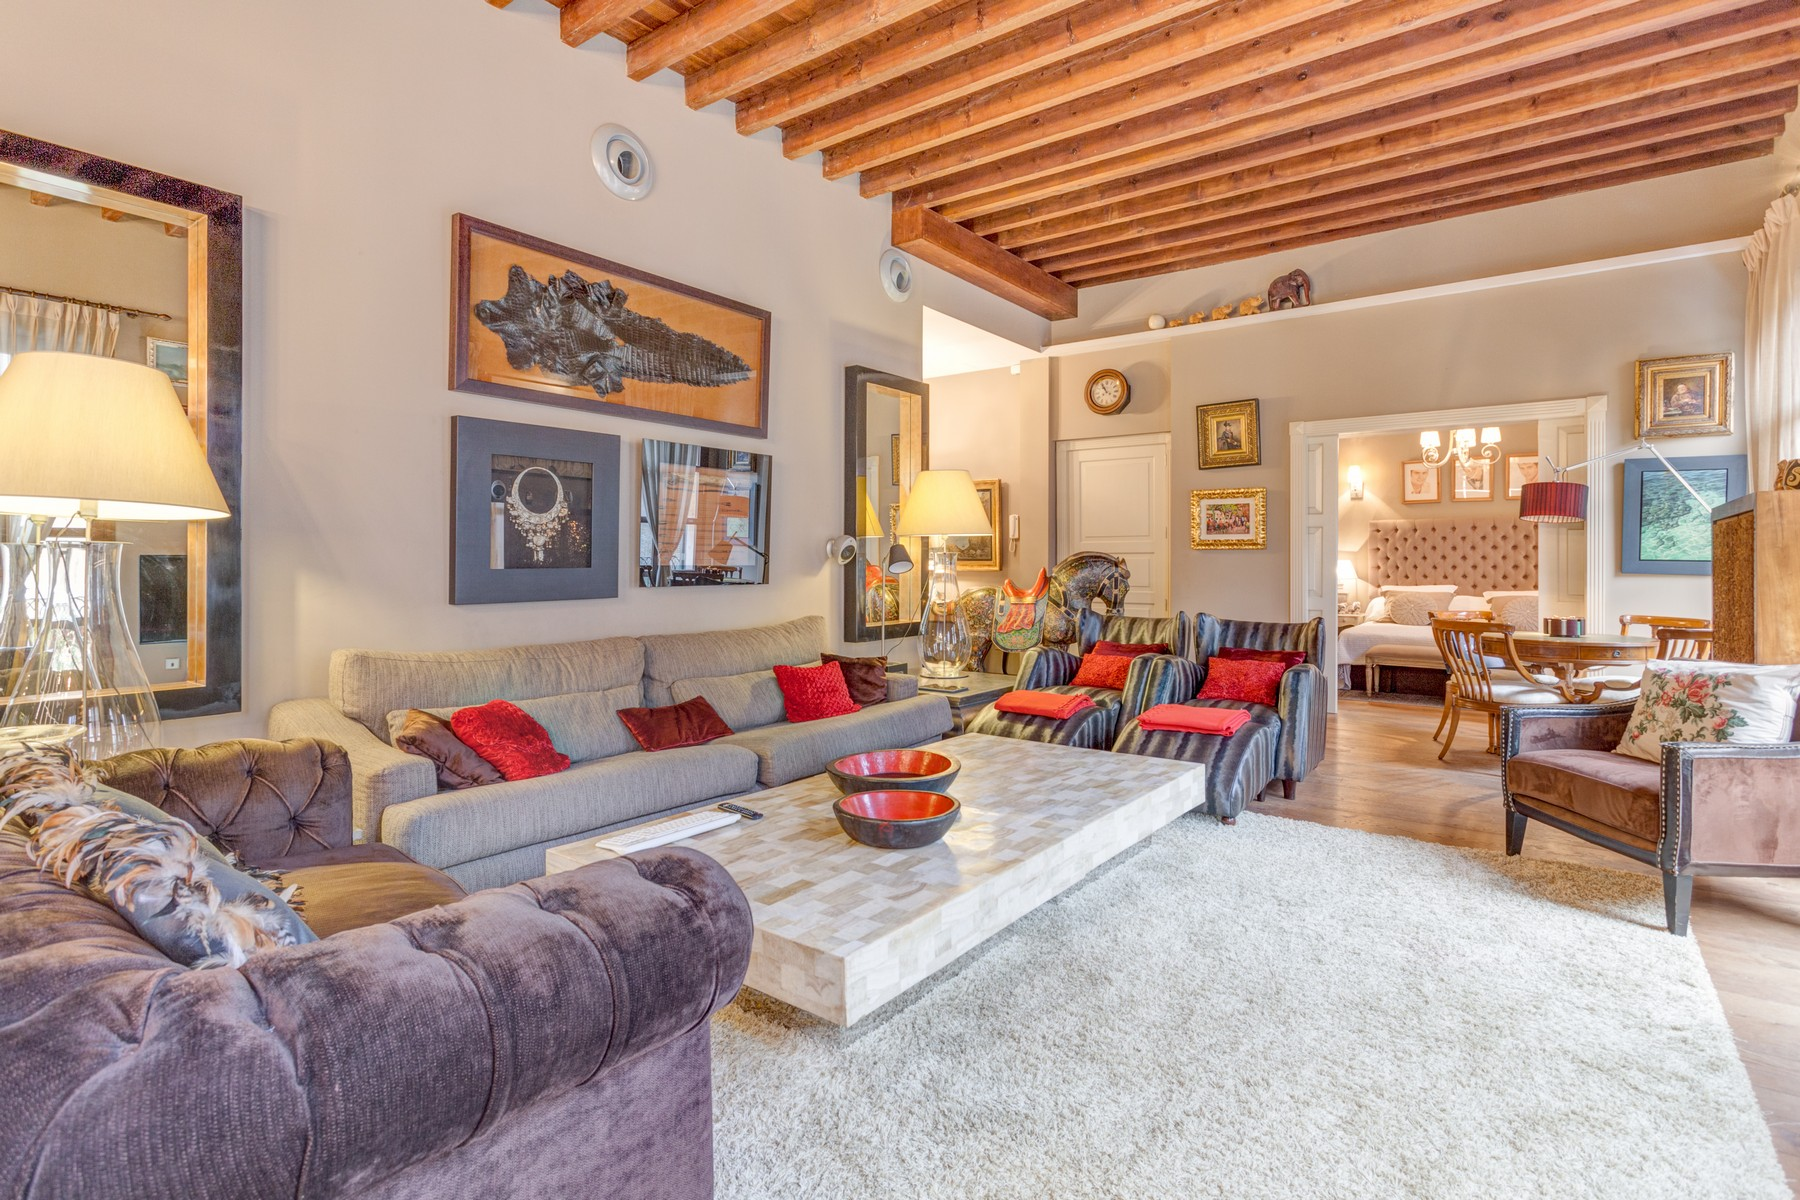 Apartment for Sale at Apartment in Palma old Town Palma Center, Mallorca, 07012 Spain